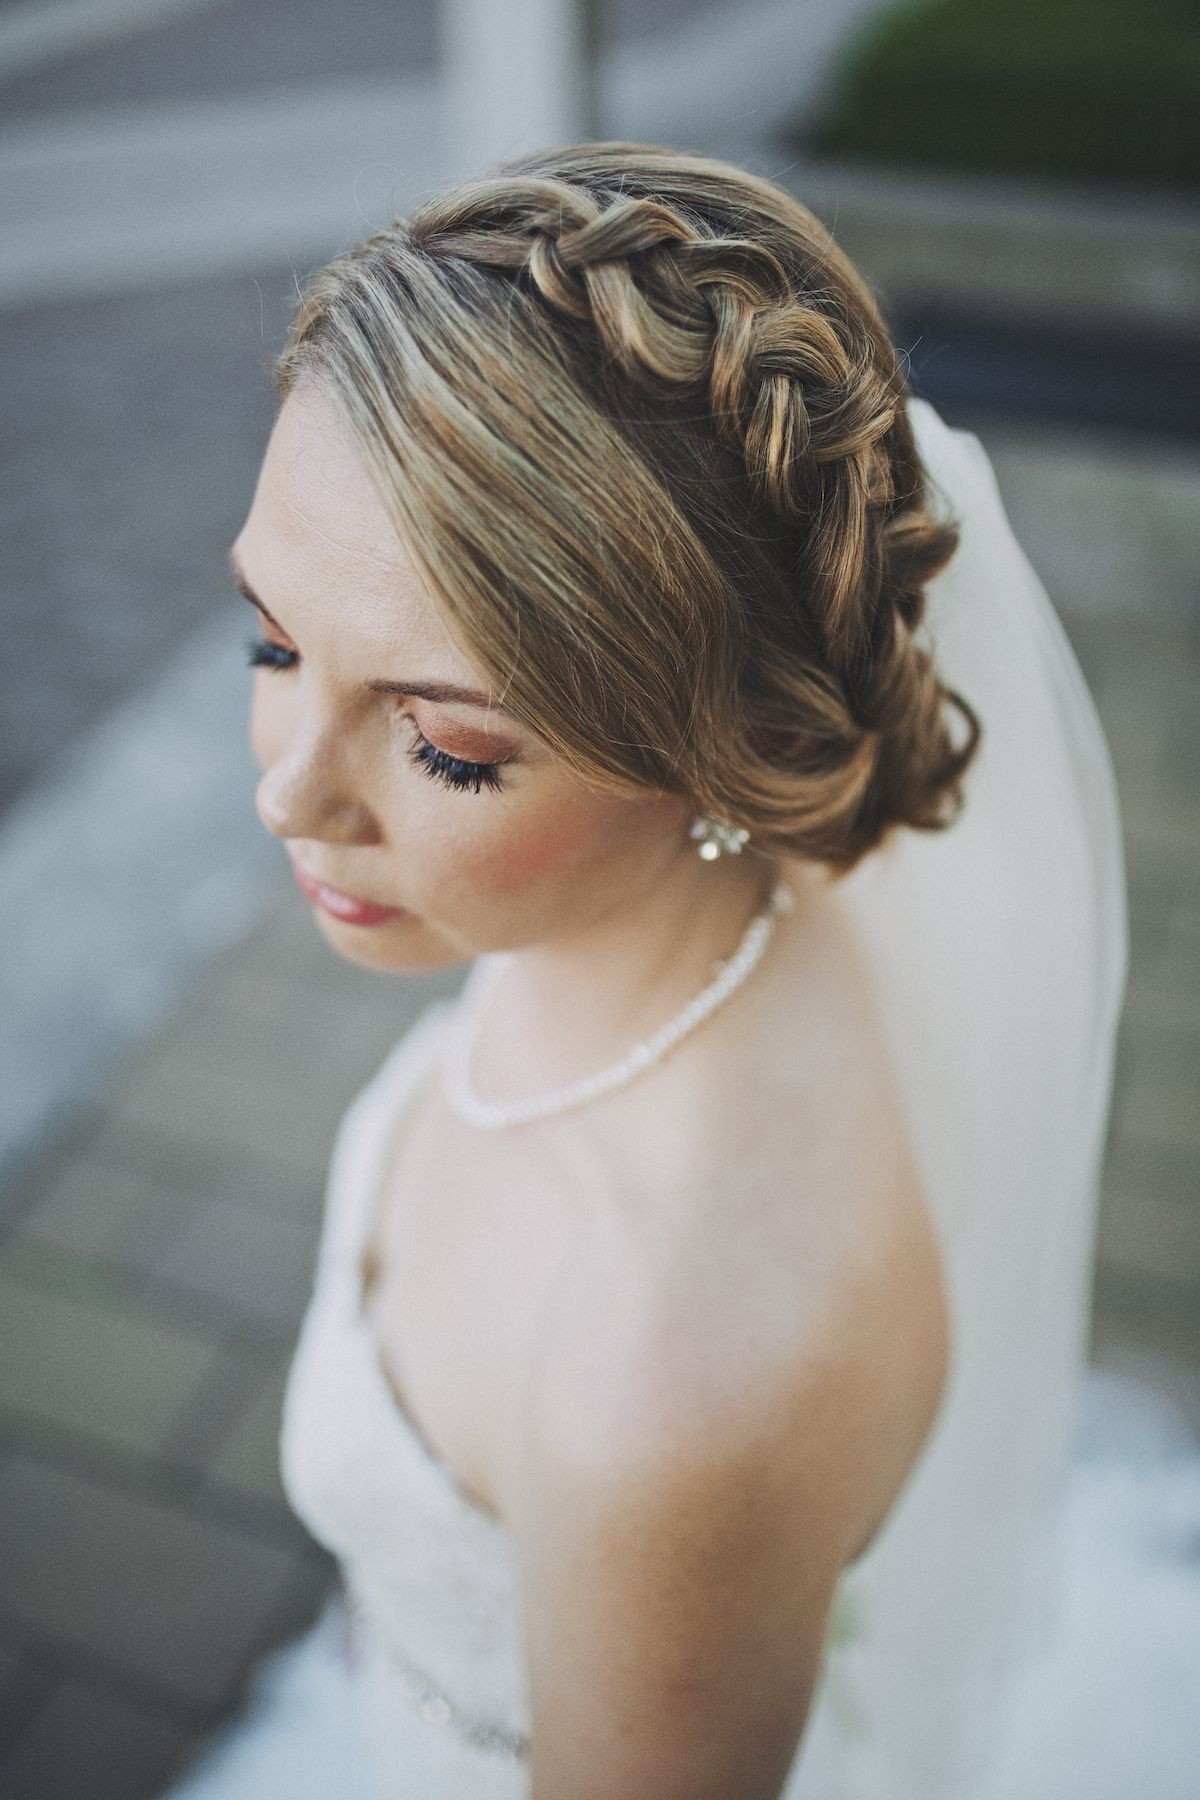 updo, upstyle, braid, dutch braid, bridal hairstyle, veil | my